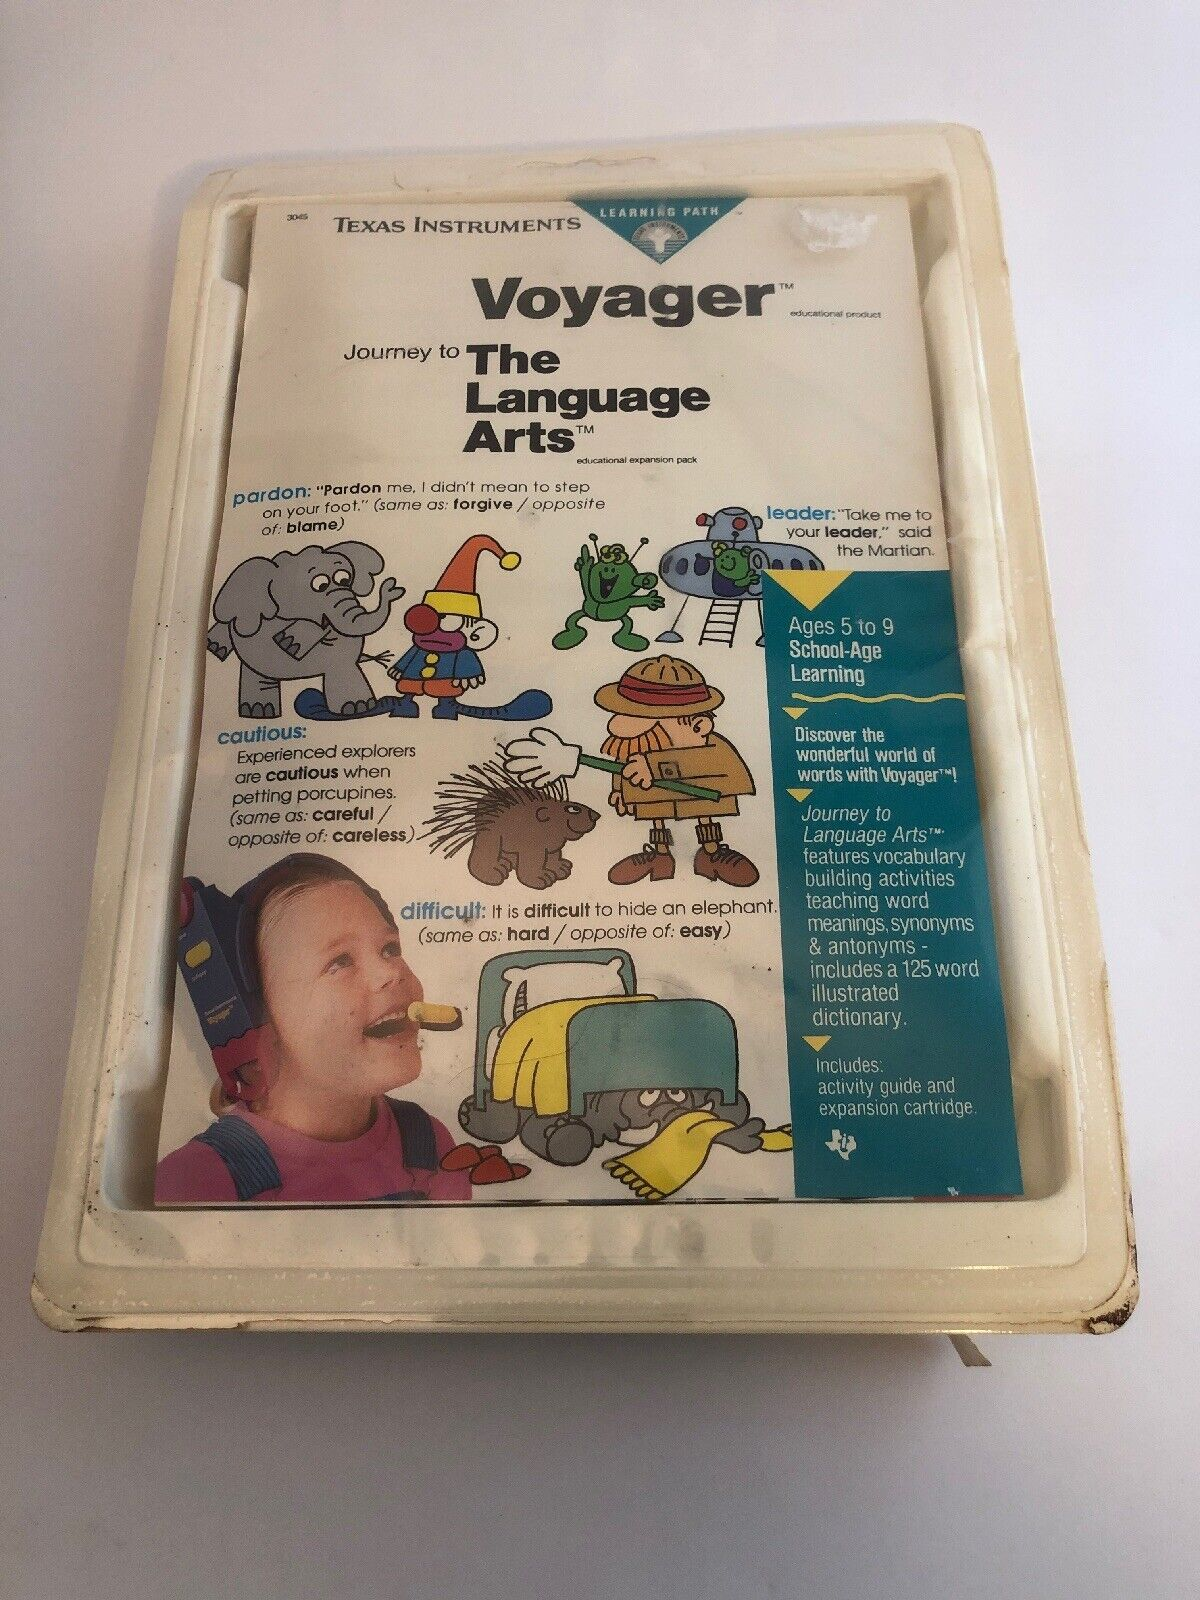 Texas InstruSiets Voyager Software TheLanguage Arts New Sealed